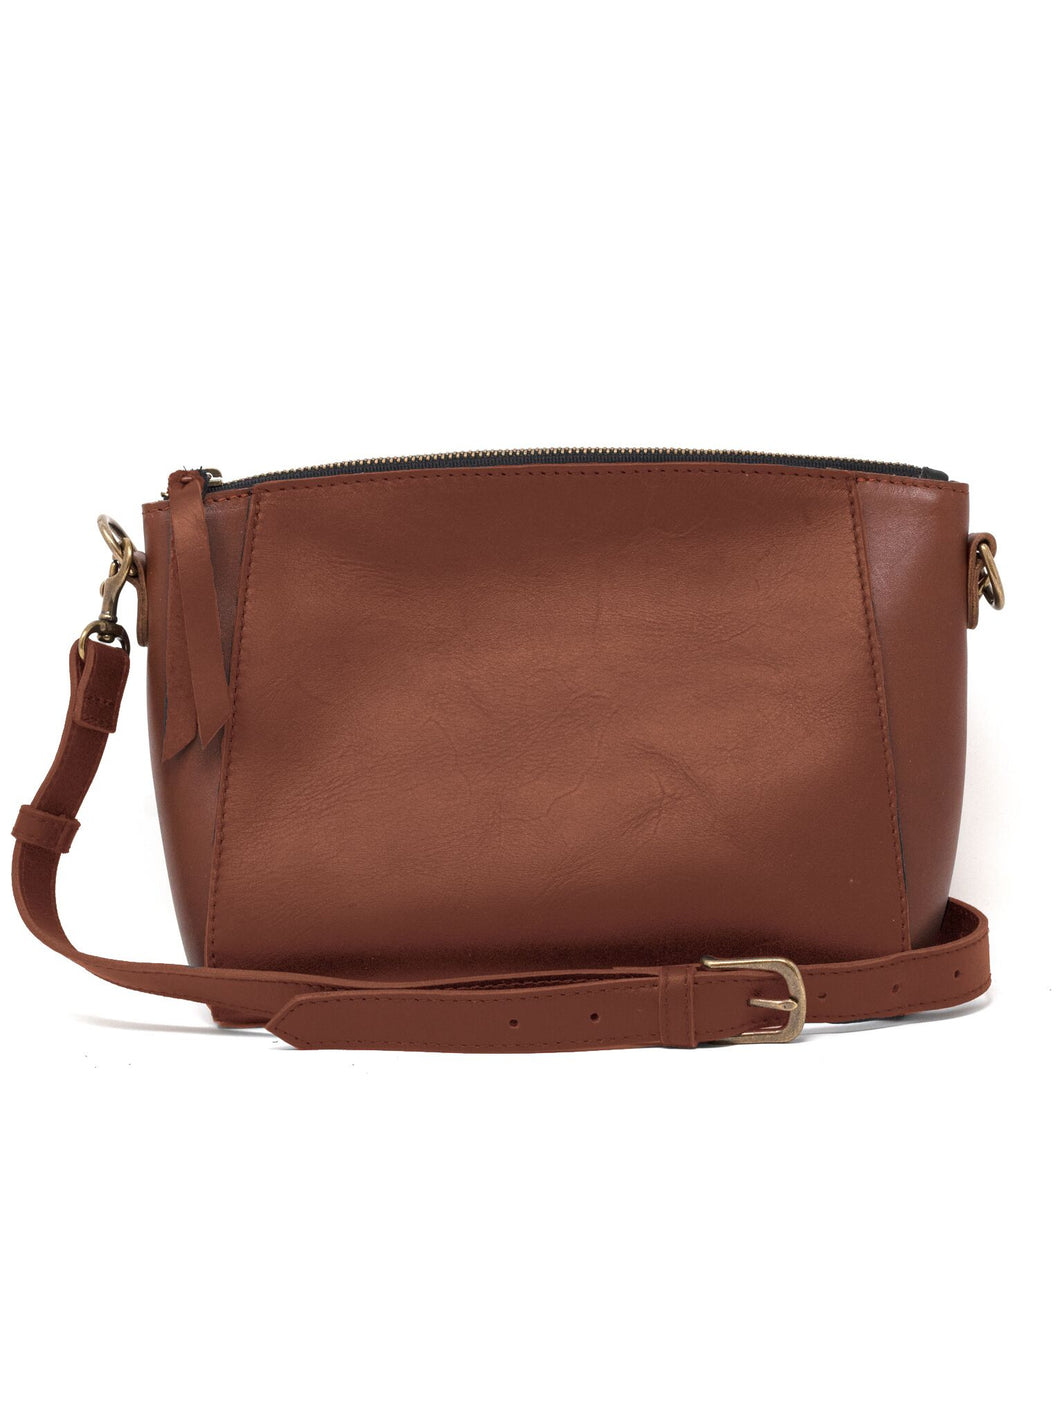 The Cecilia Zip Crossbody in Whiskey by ABLE